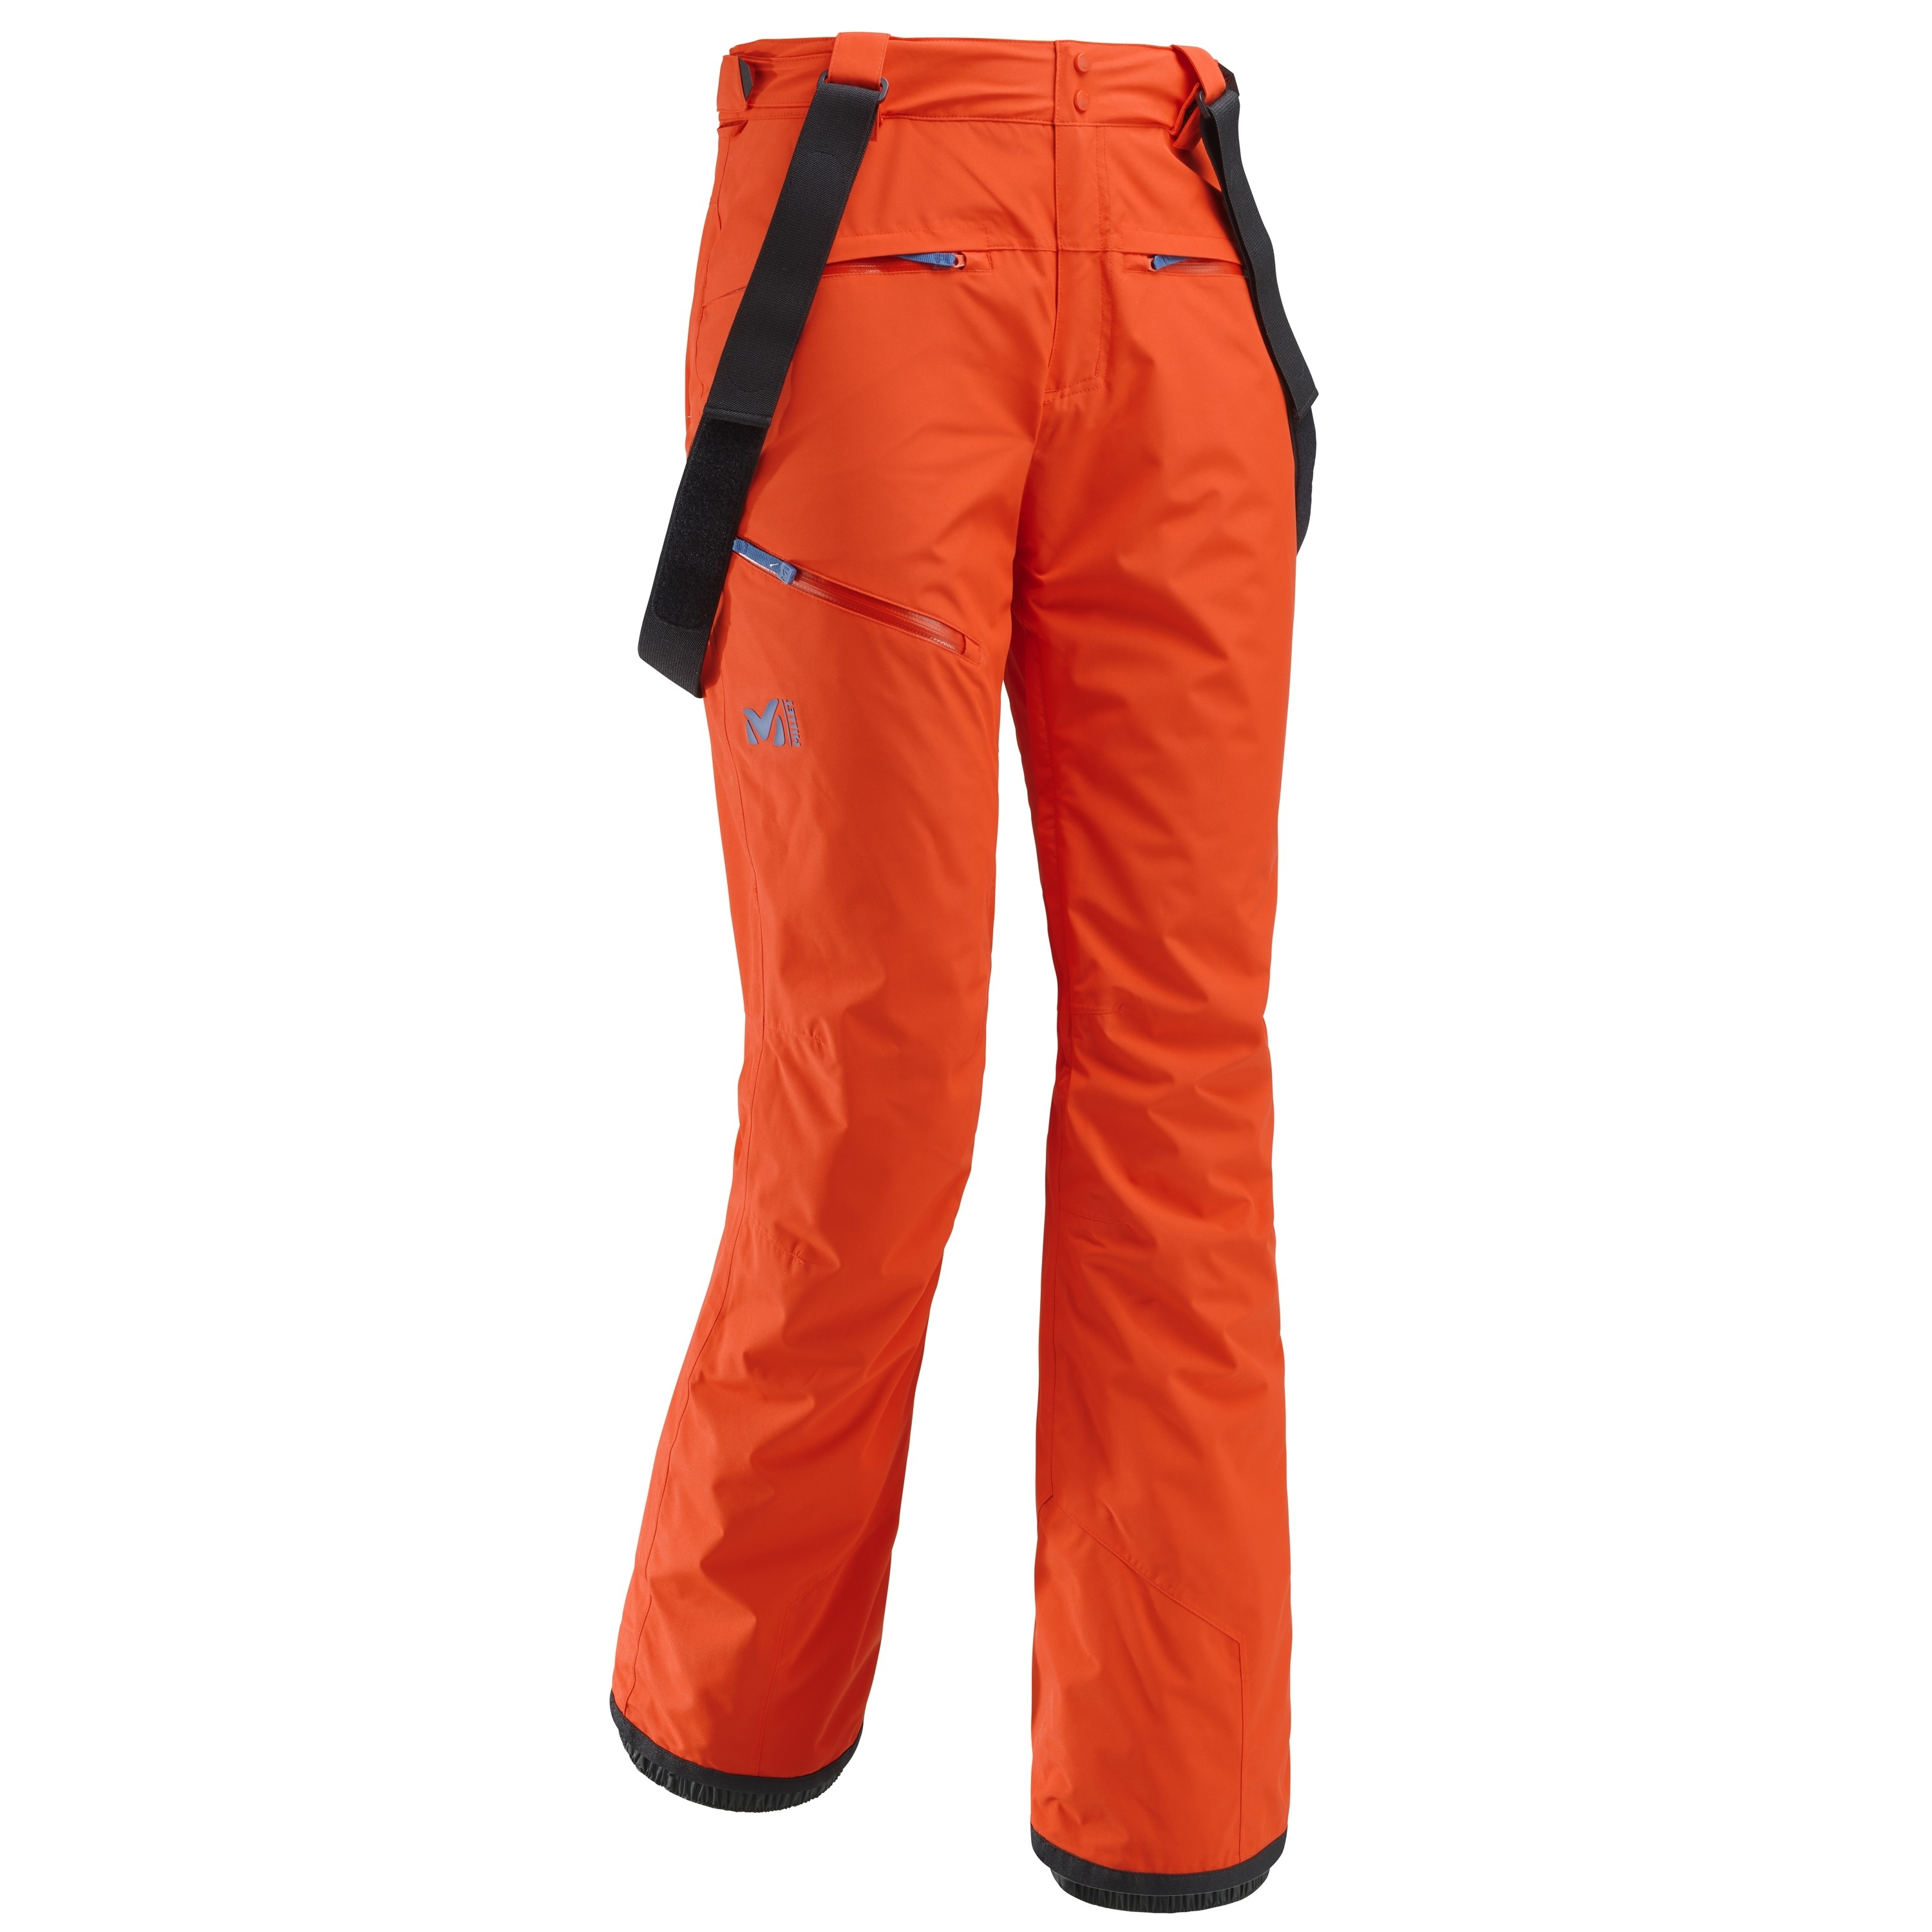 Atna Peak Pant Orange